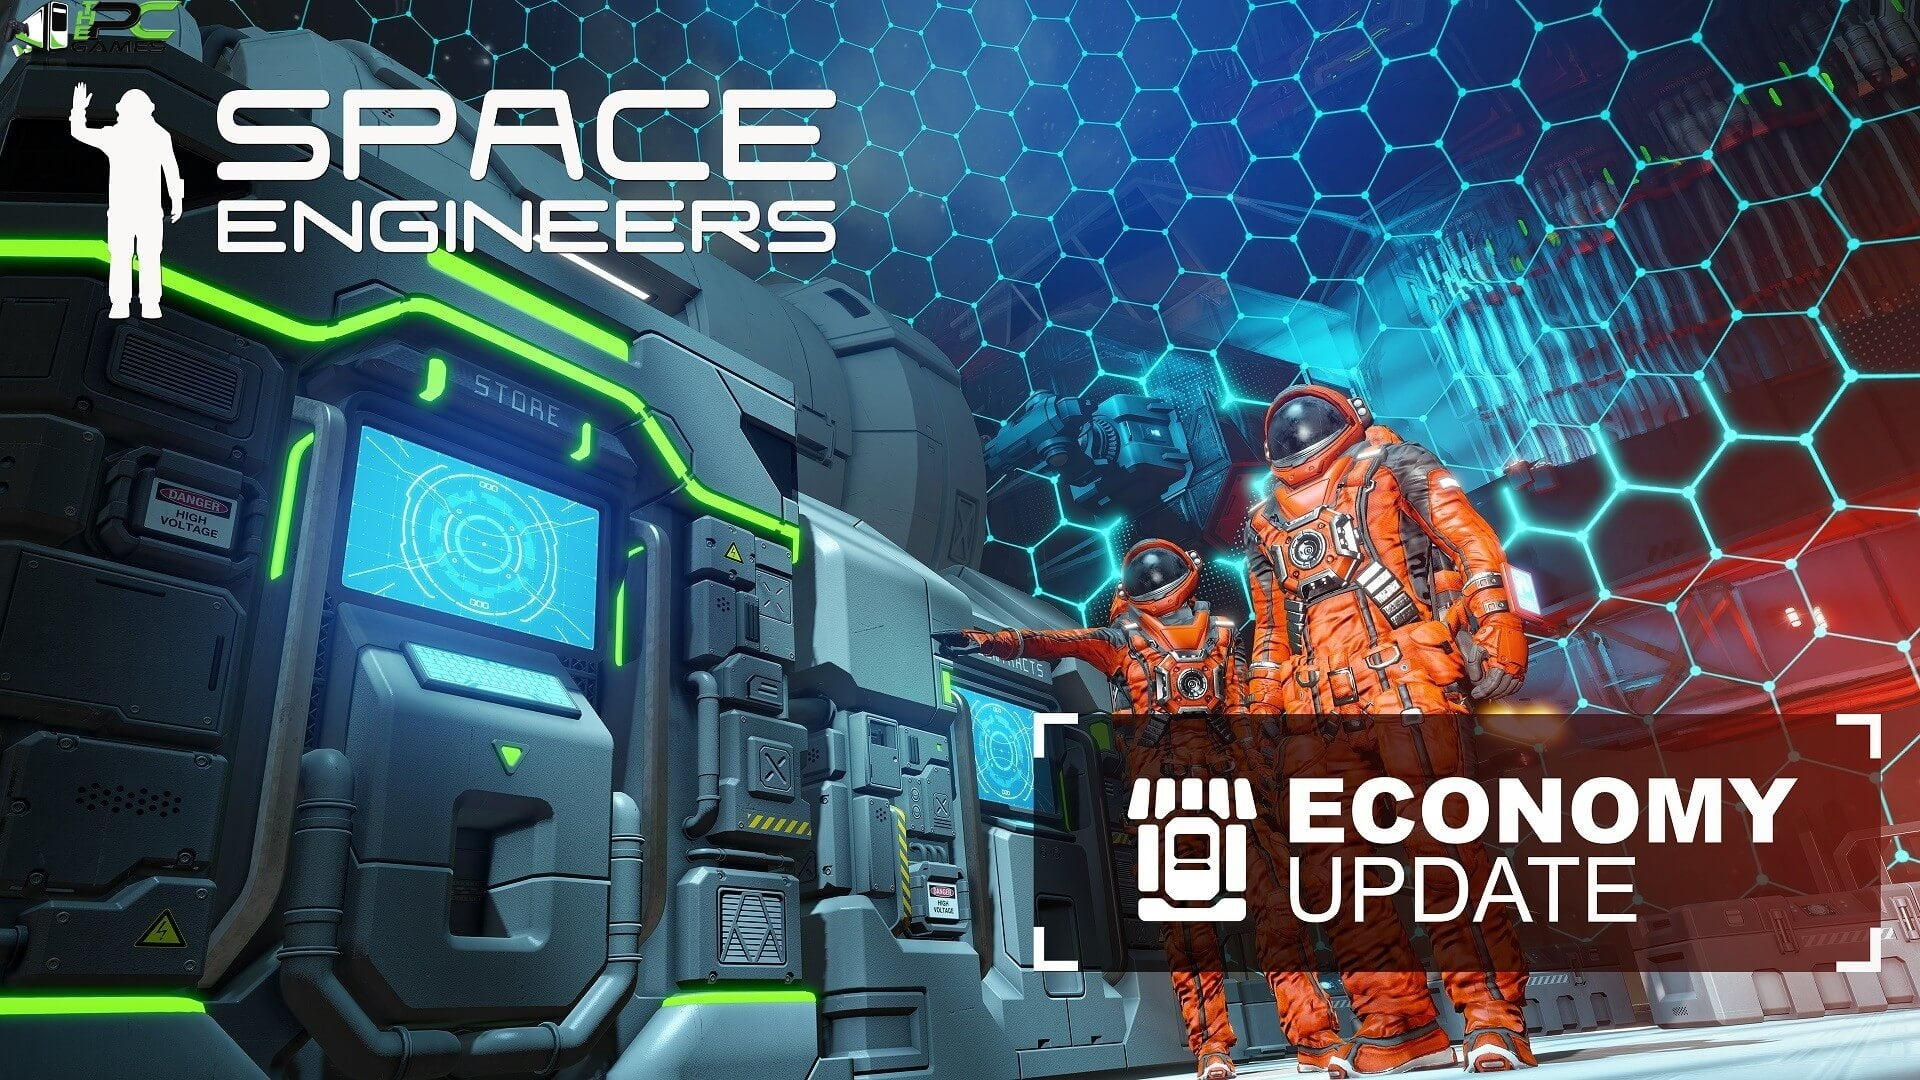 Space Engineers Economy Cover